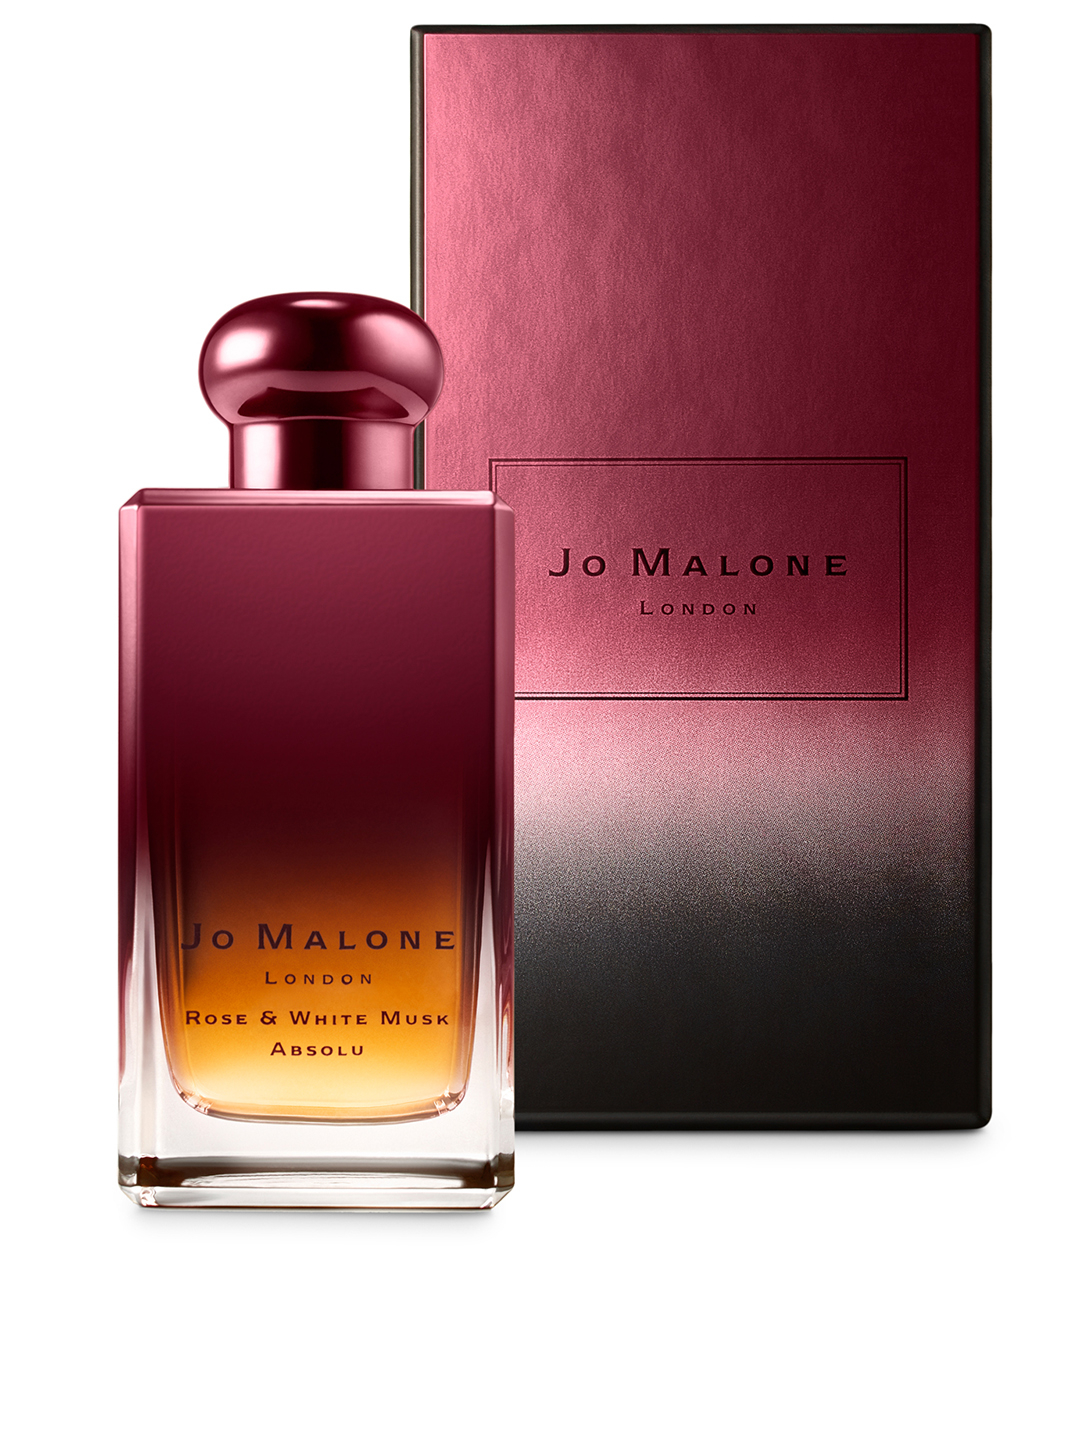 JO MALONE LONDON Cologne Rose & White Musk Absolu Beauté